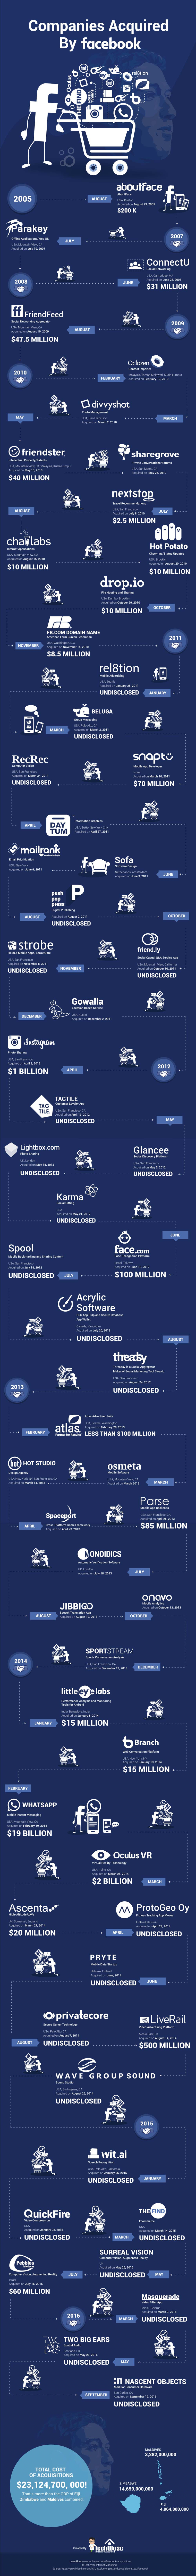 Companies-Acquired-by-Facebook-infographic-plaza